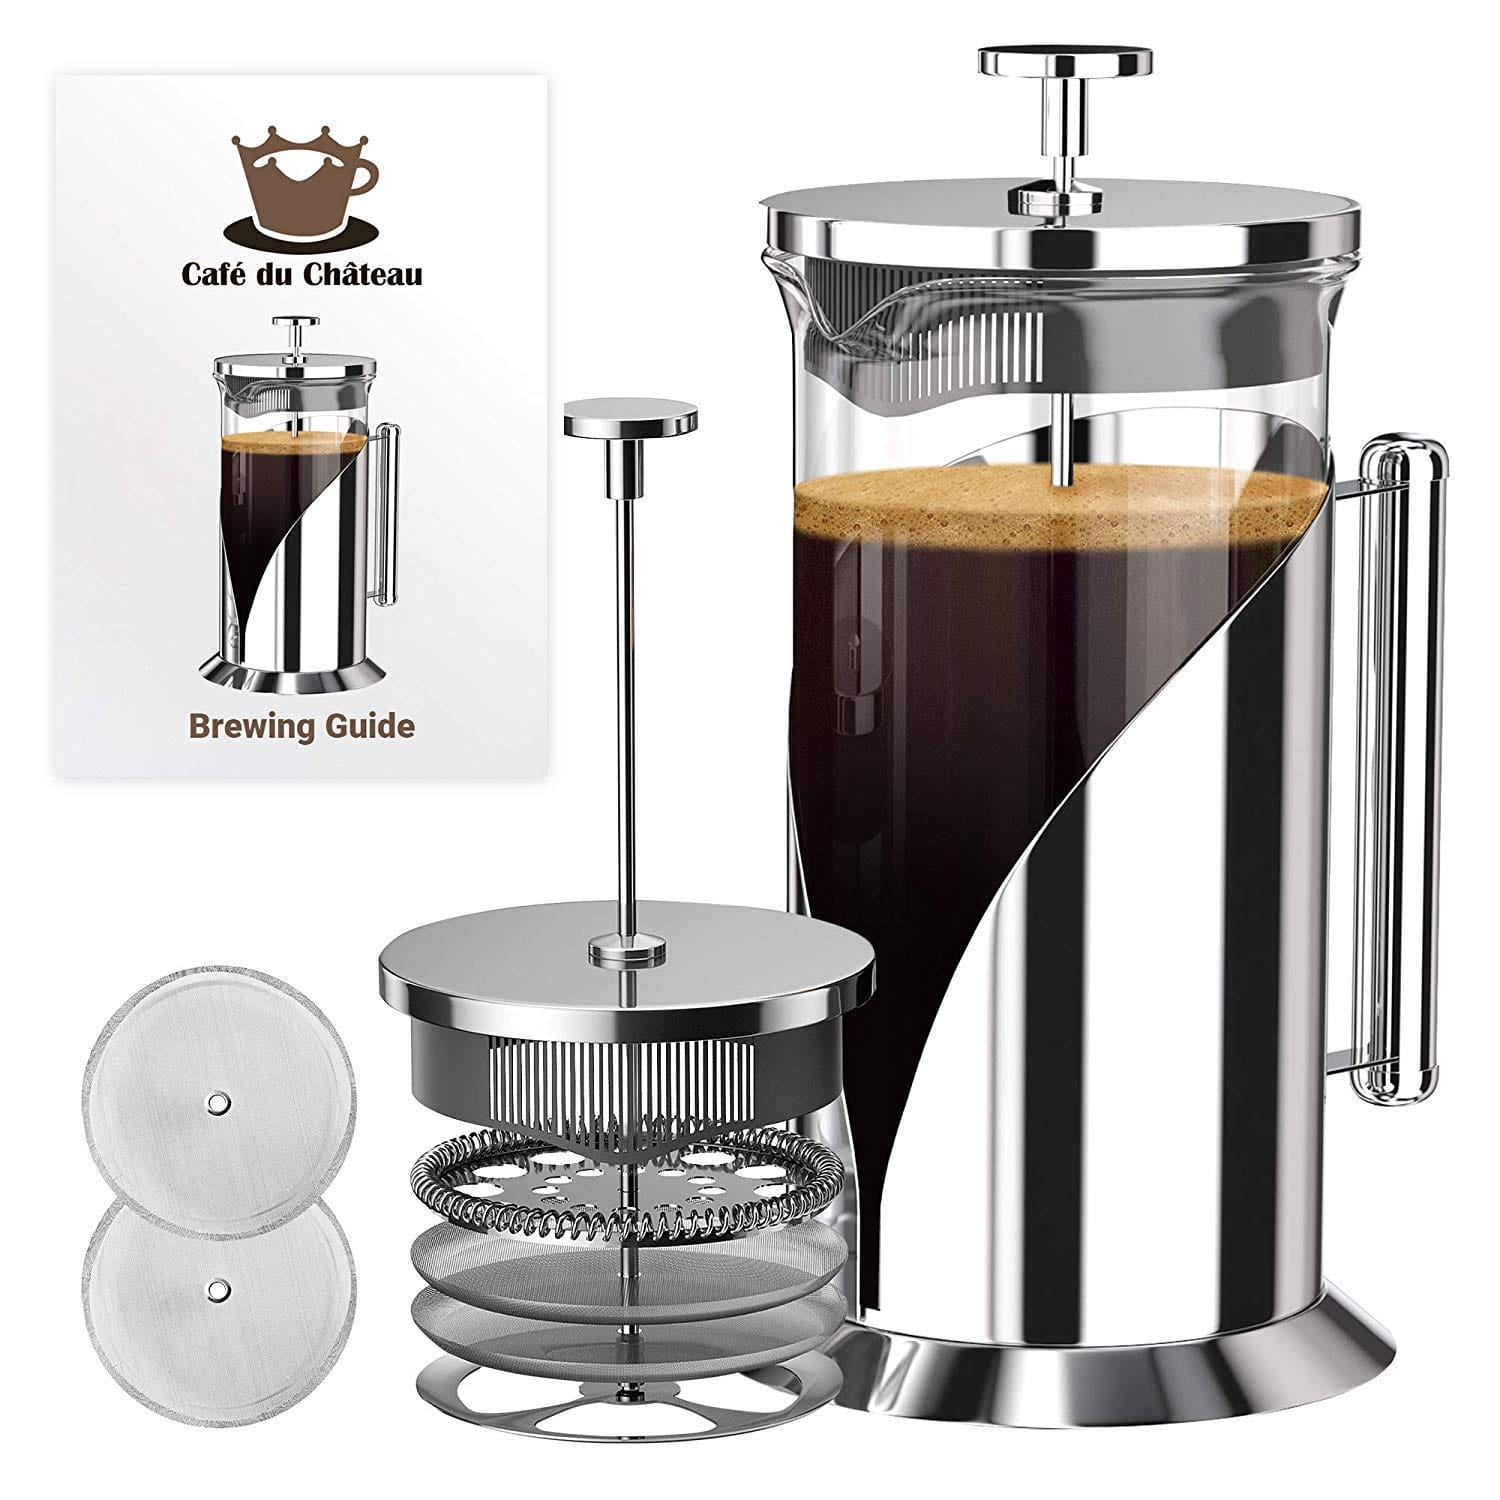 Cafe Du Chateau 34 Ounce French Press Coffee Maker with 4 Level Filtration System. $20.35 (Amazon)